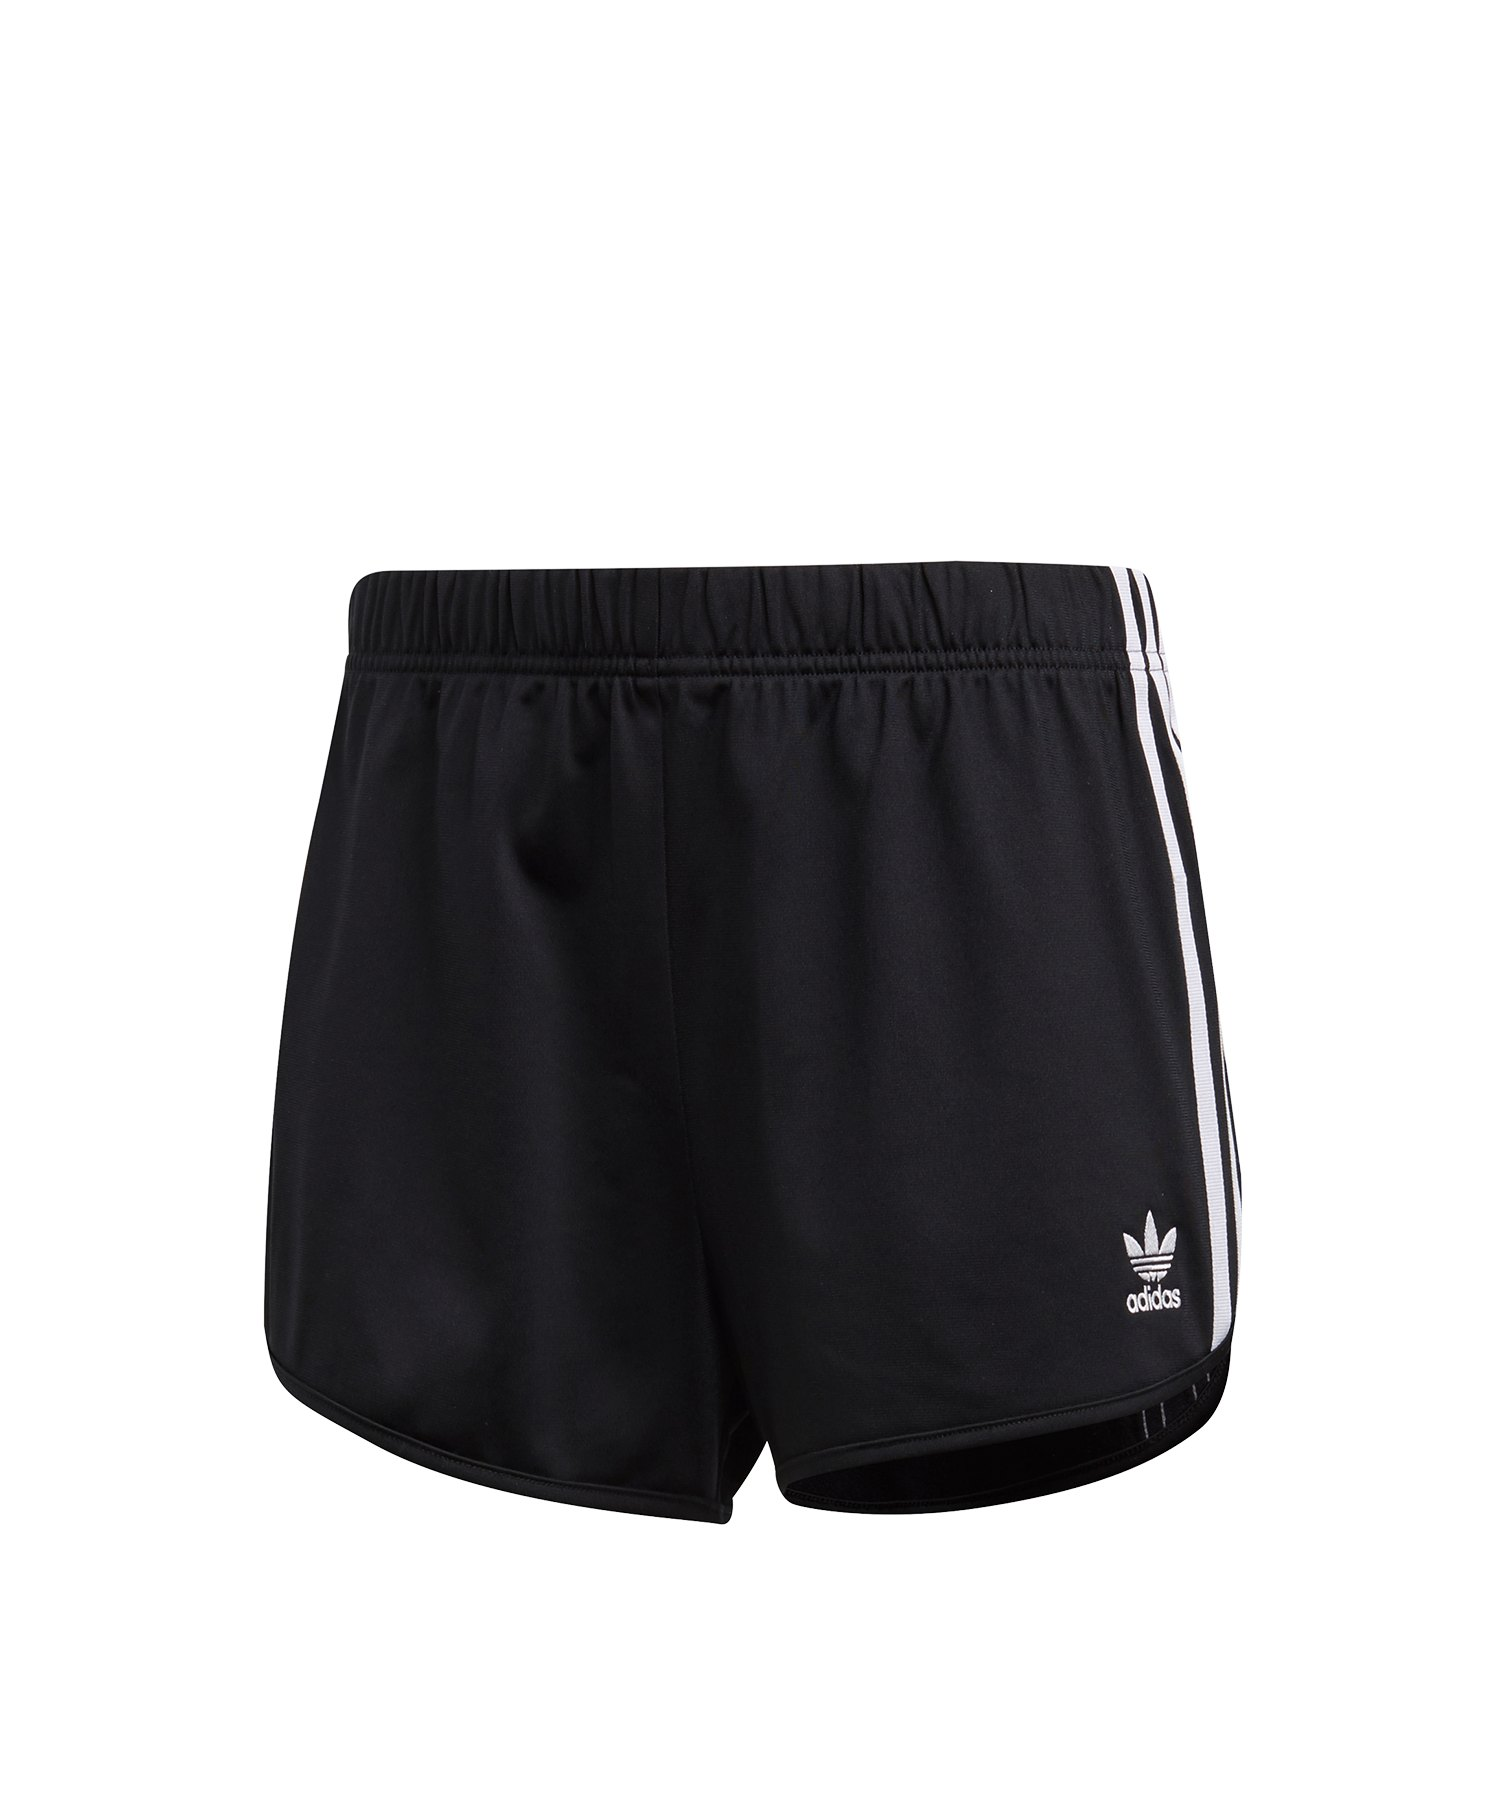 adidas Originals 3 Stripes Short Damen Schwarz